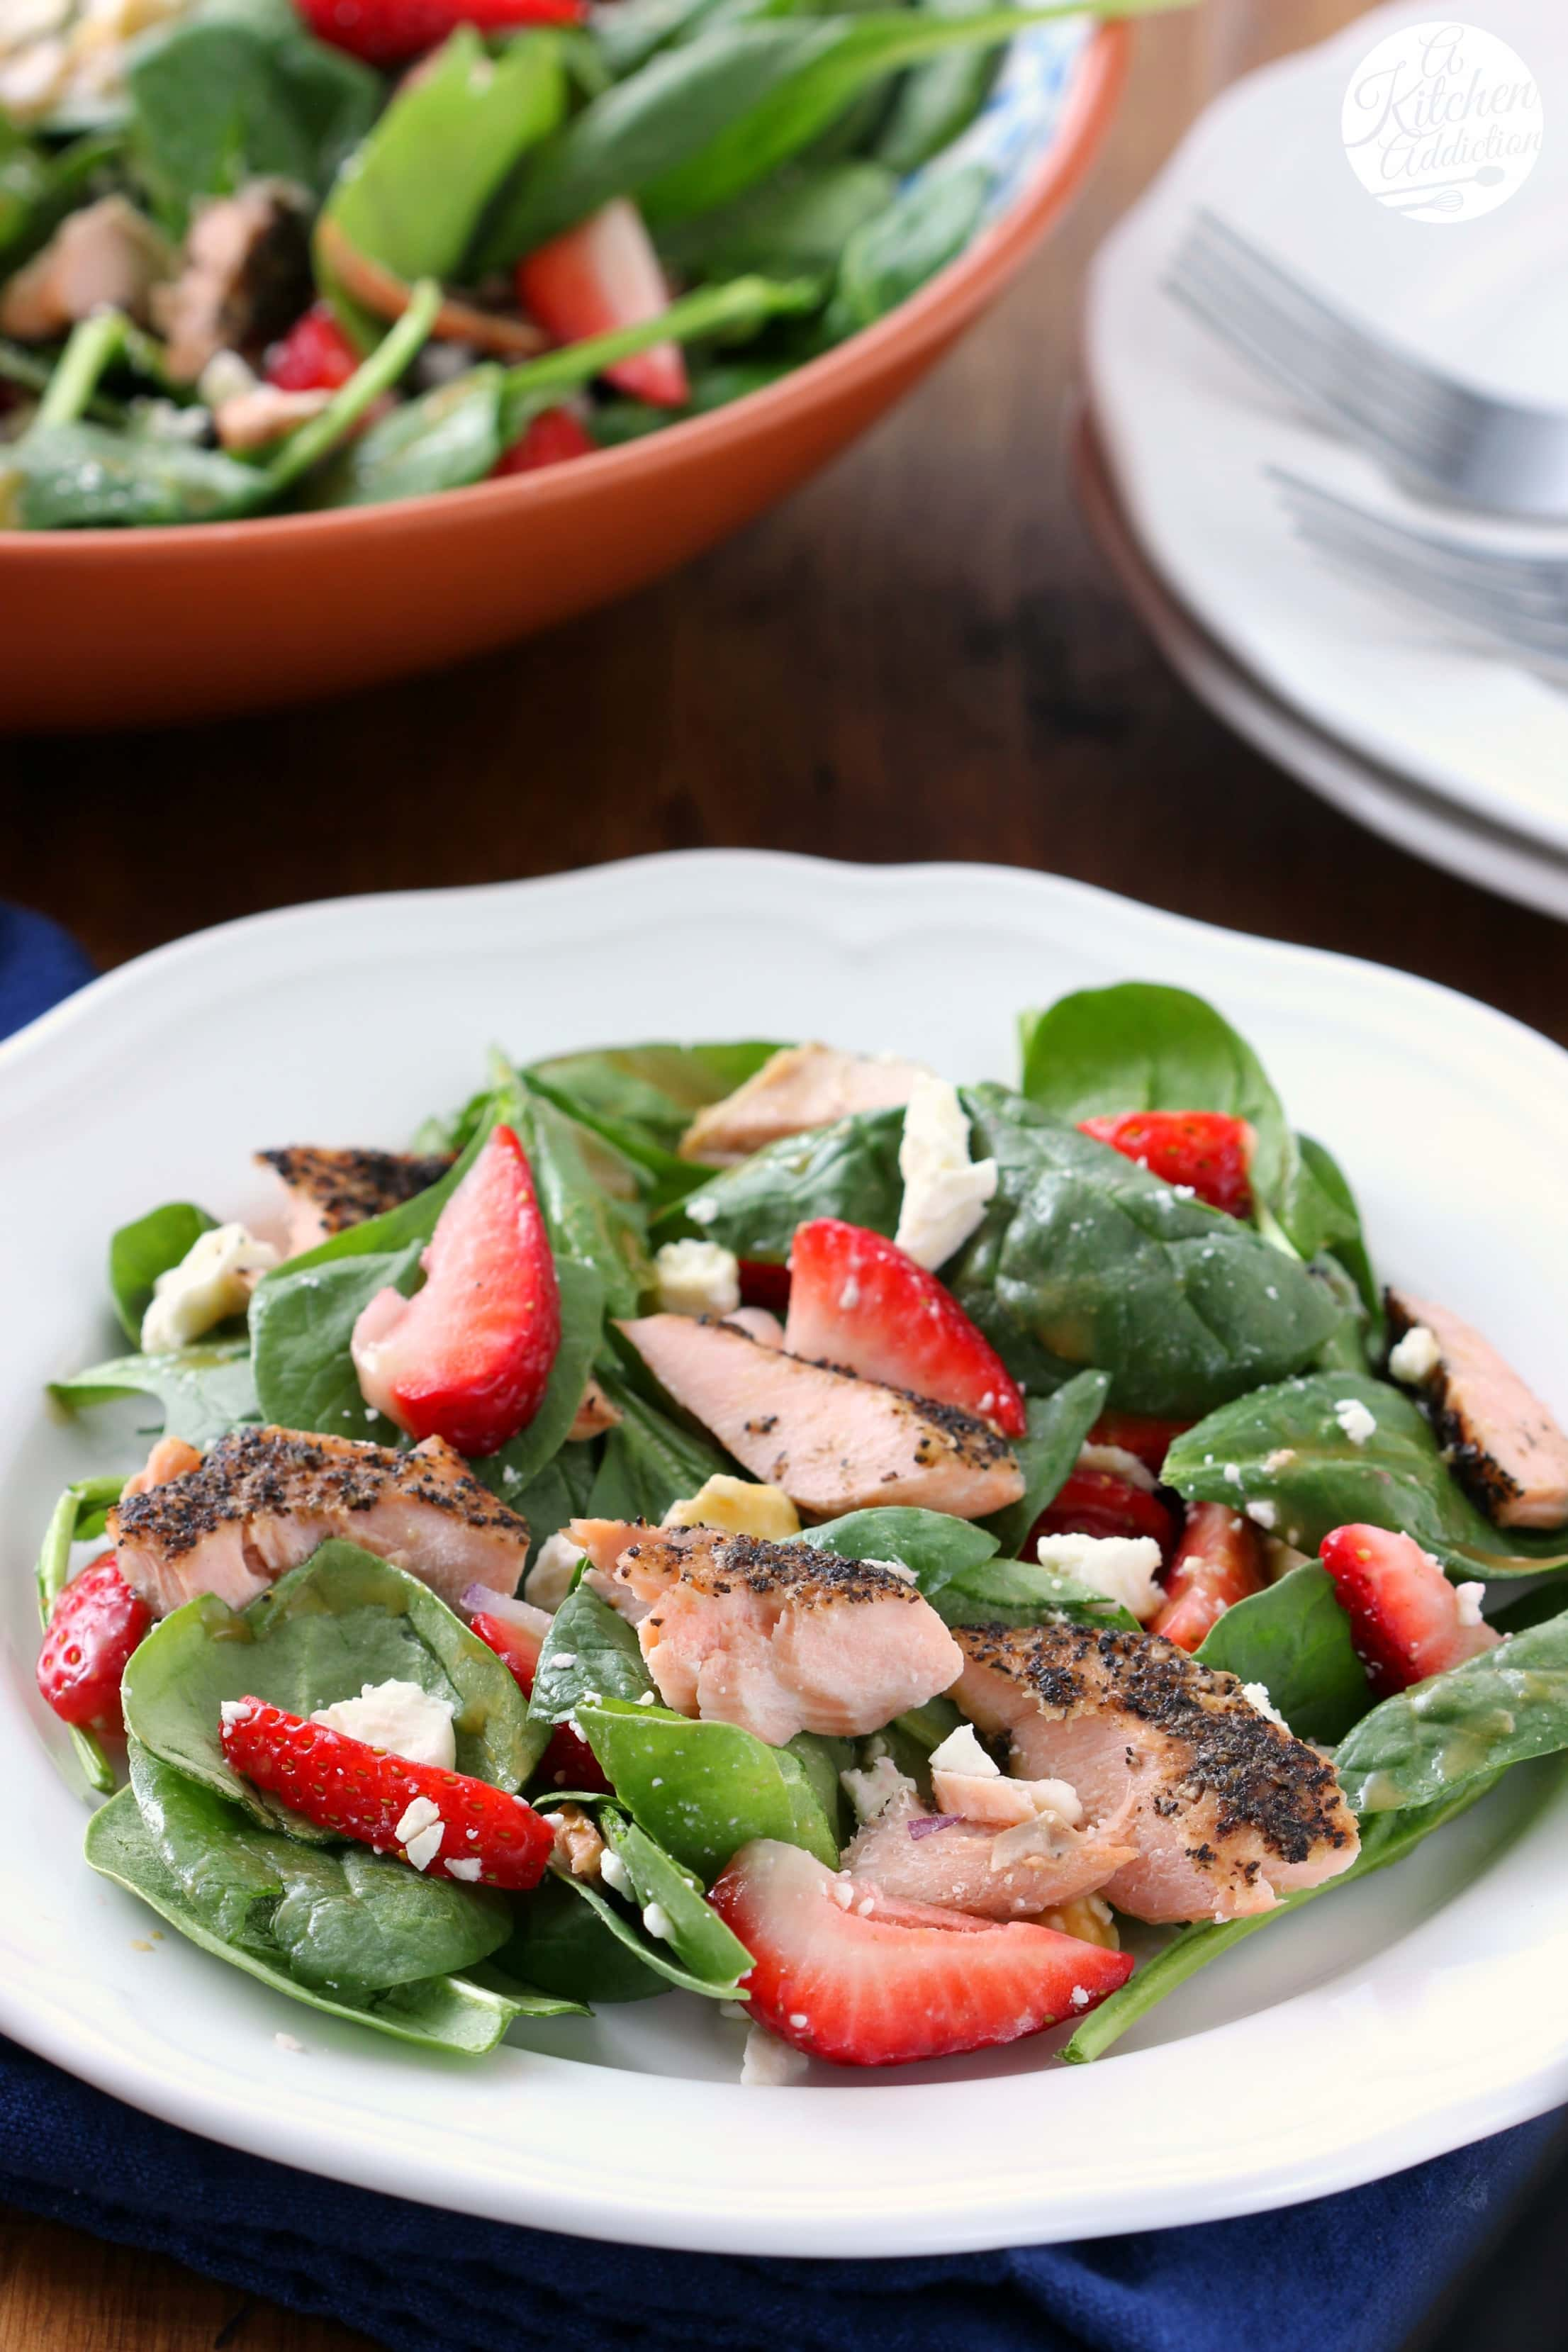 Easy Baked Salmon Strawberry Spinach Salad Recipe from A Kitchen Addiction